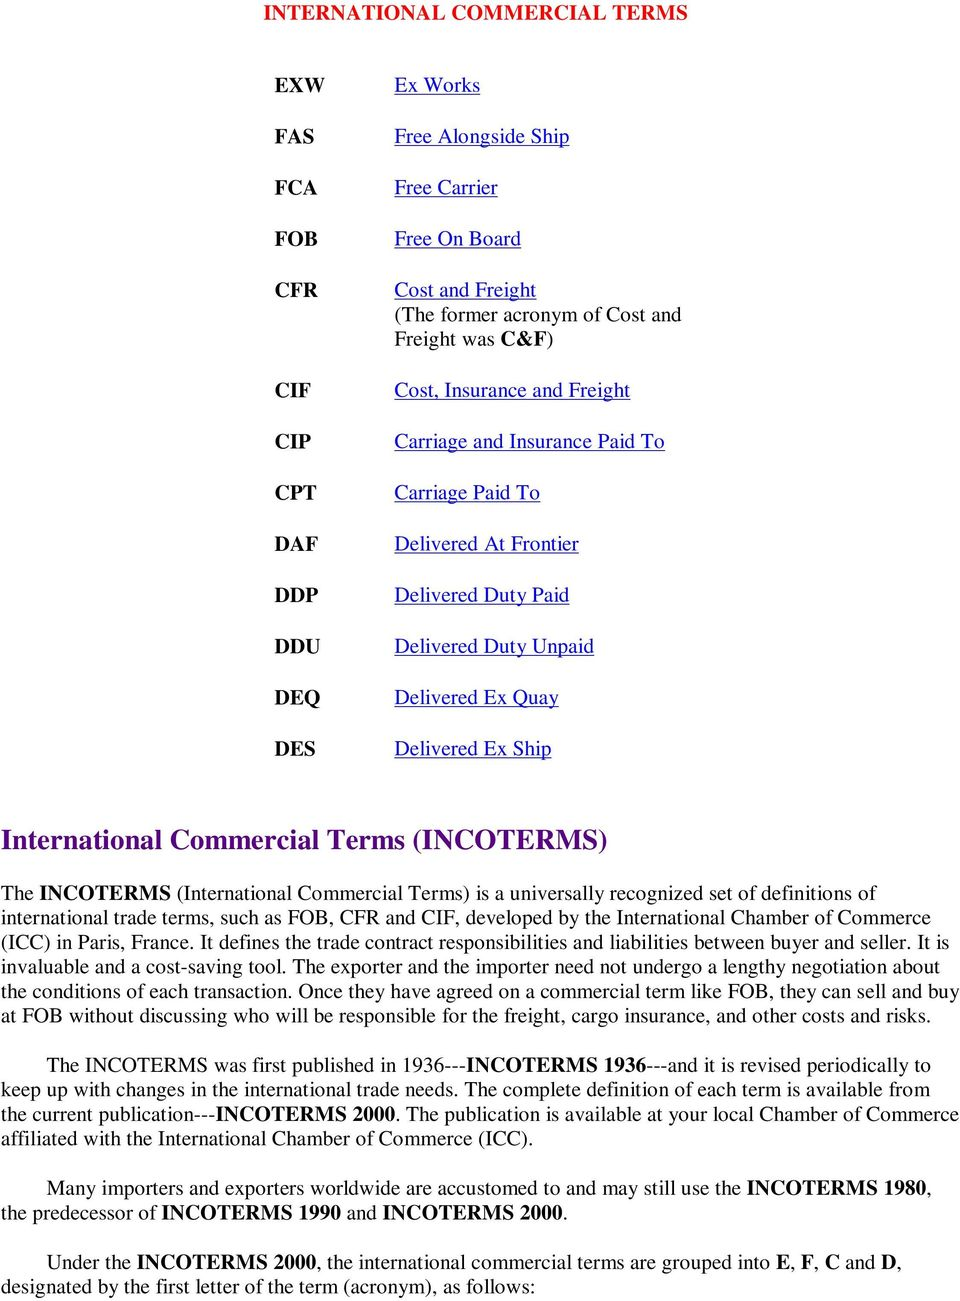 Commercial Terms (INCOTERMS) The INCOTERMS (International Commercial Terms) is a universally recognized set of definitions of international trade terms, such as FOB, CFR and CIF, developed by the